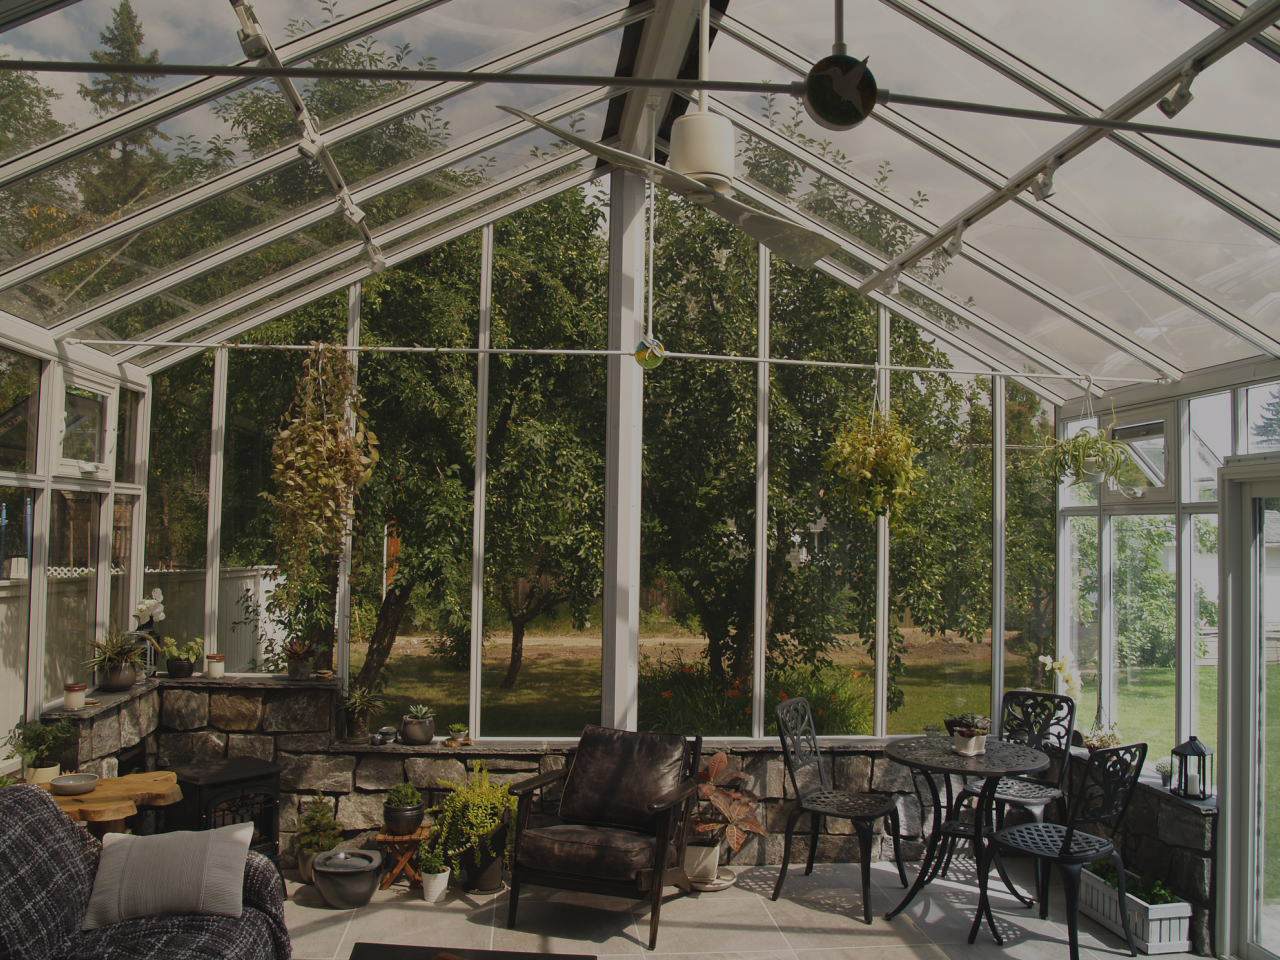 An interior view of a large white gable-style conservatory with clear windows and furniture